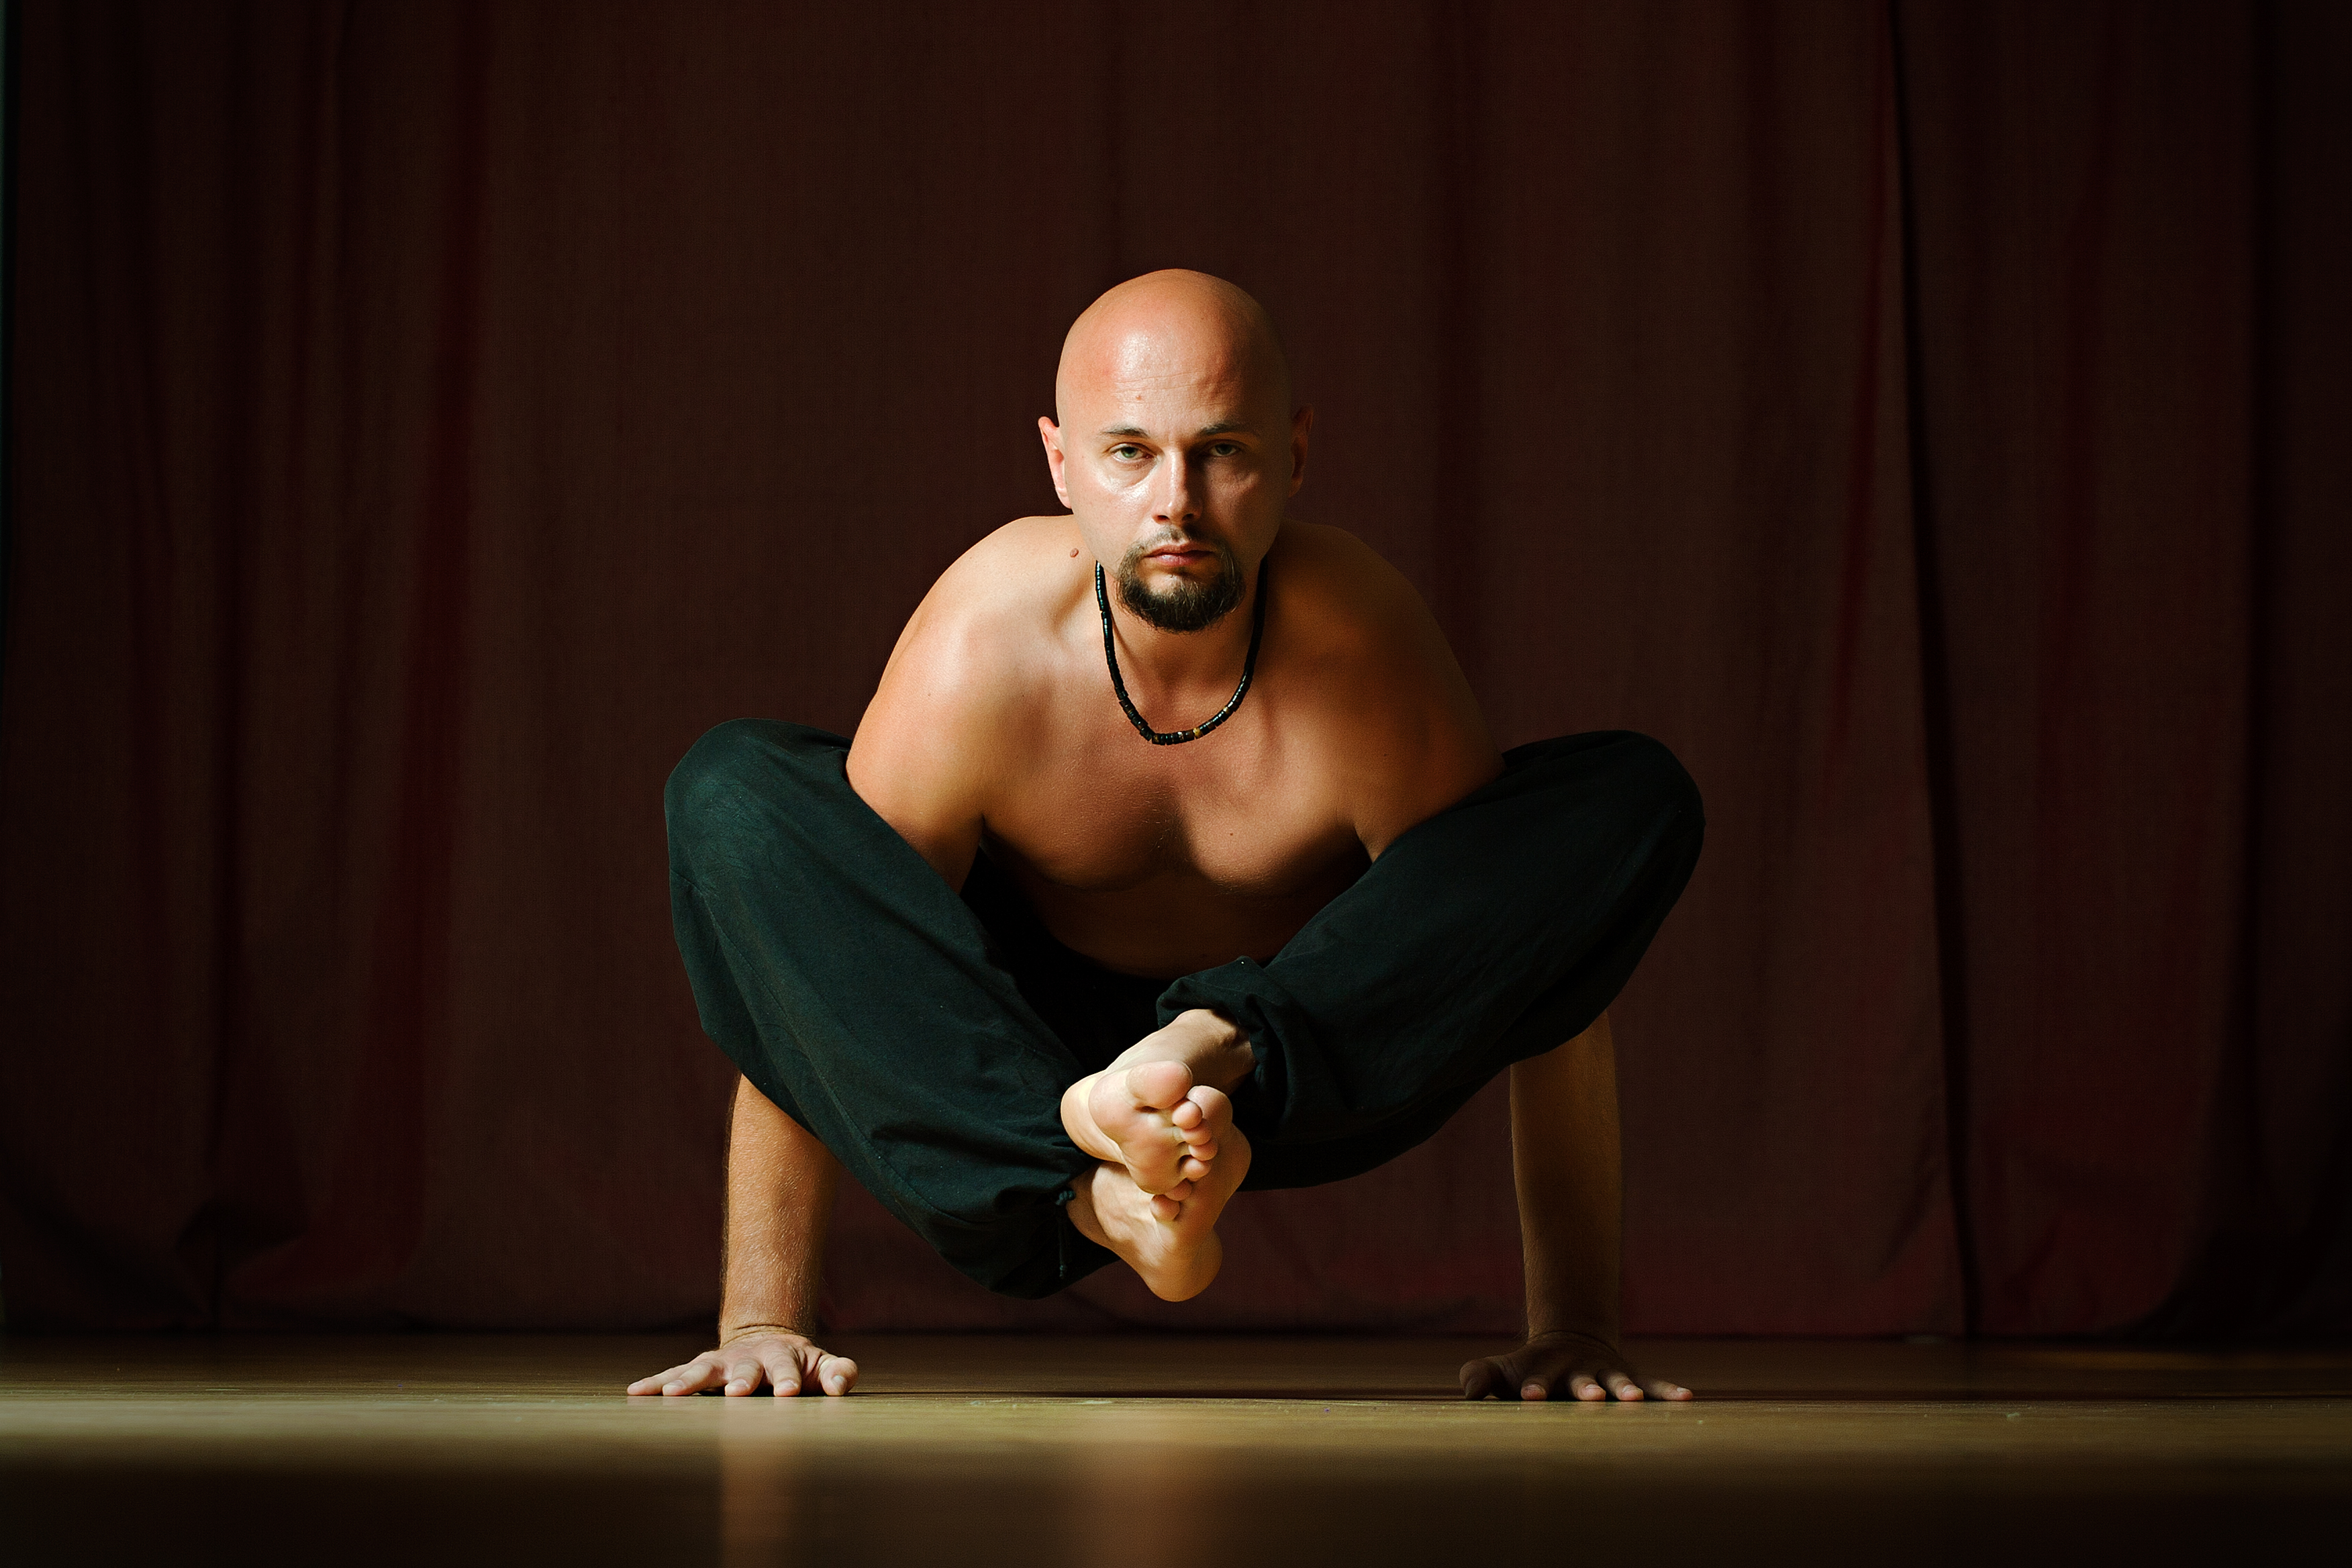 Anatoliy Pakhomov the founder of Vajra Yoga